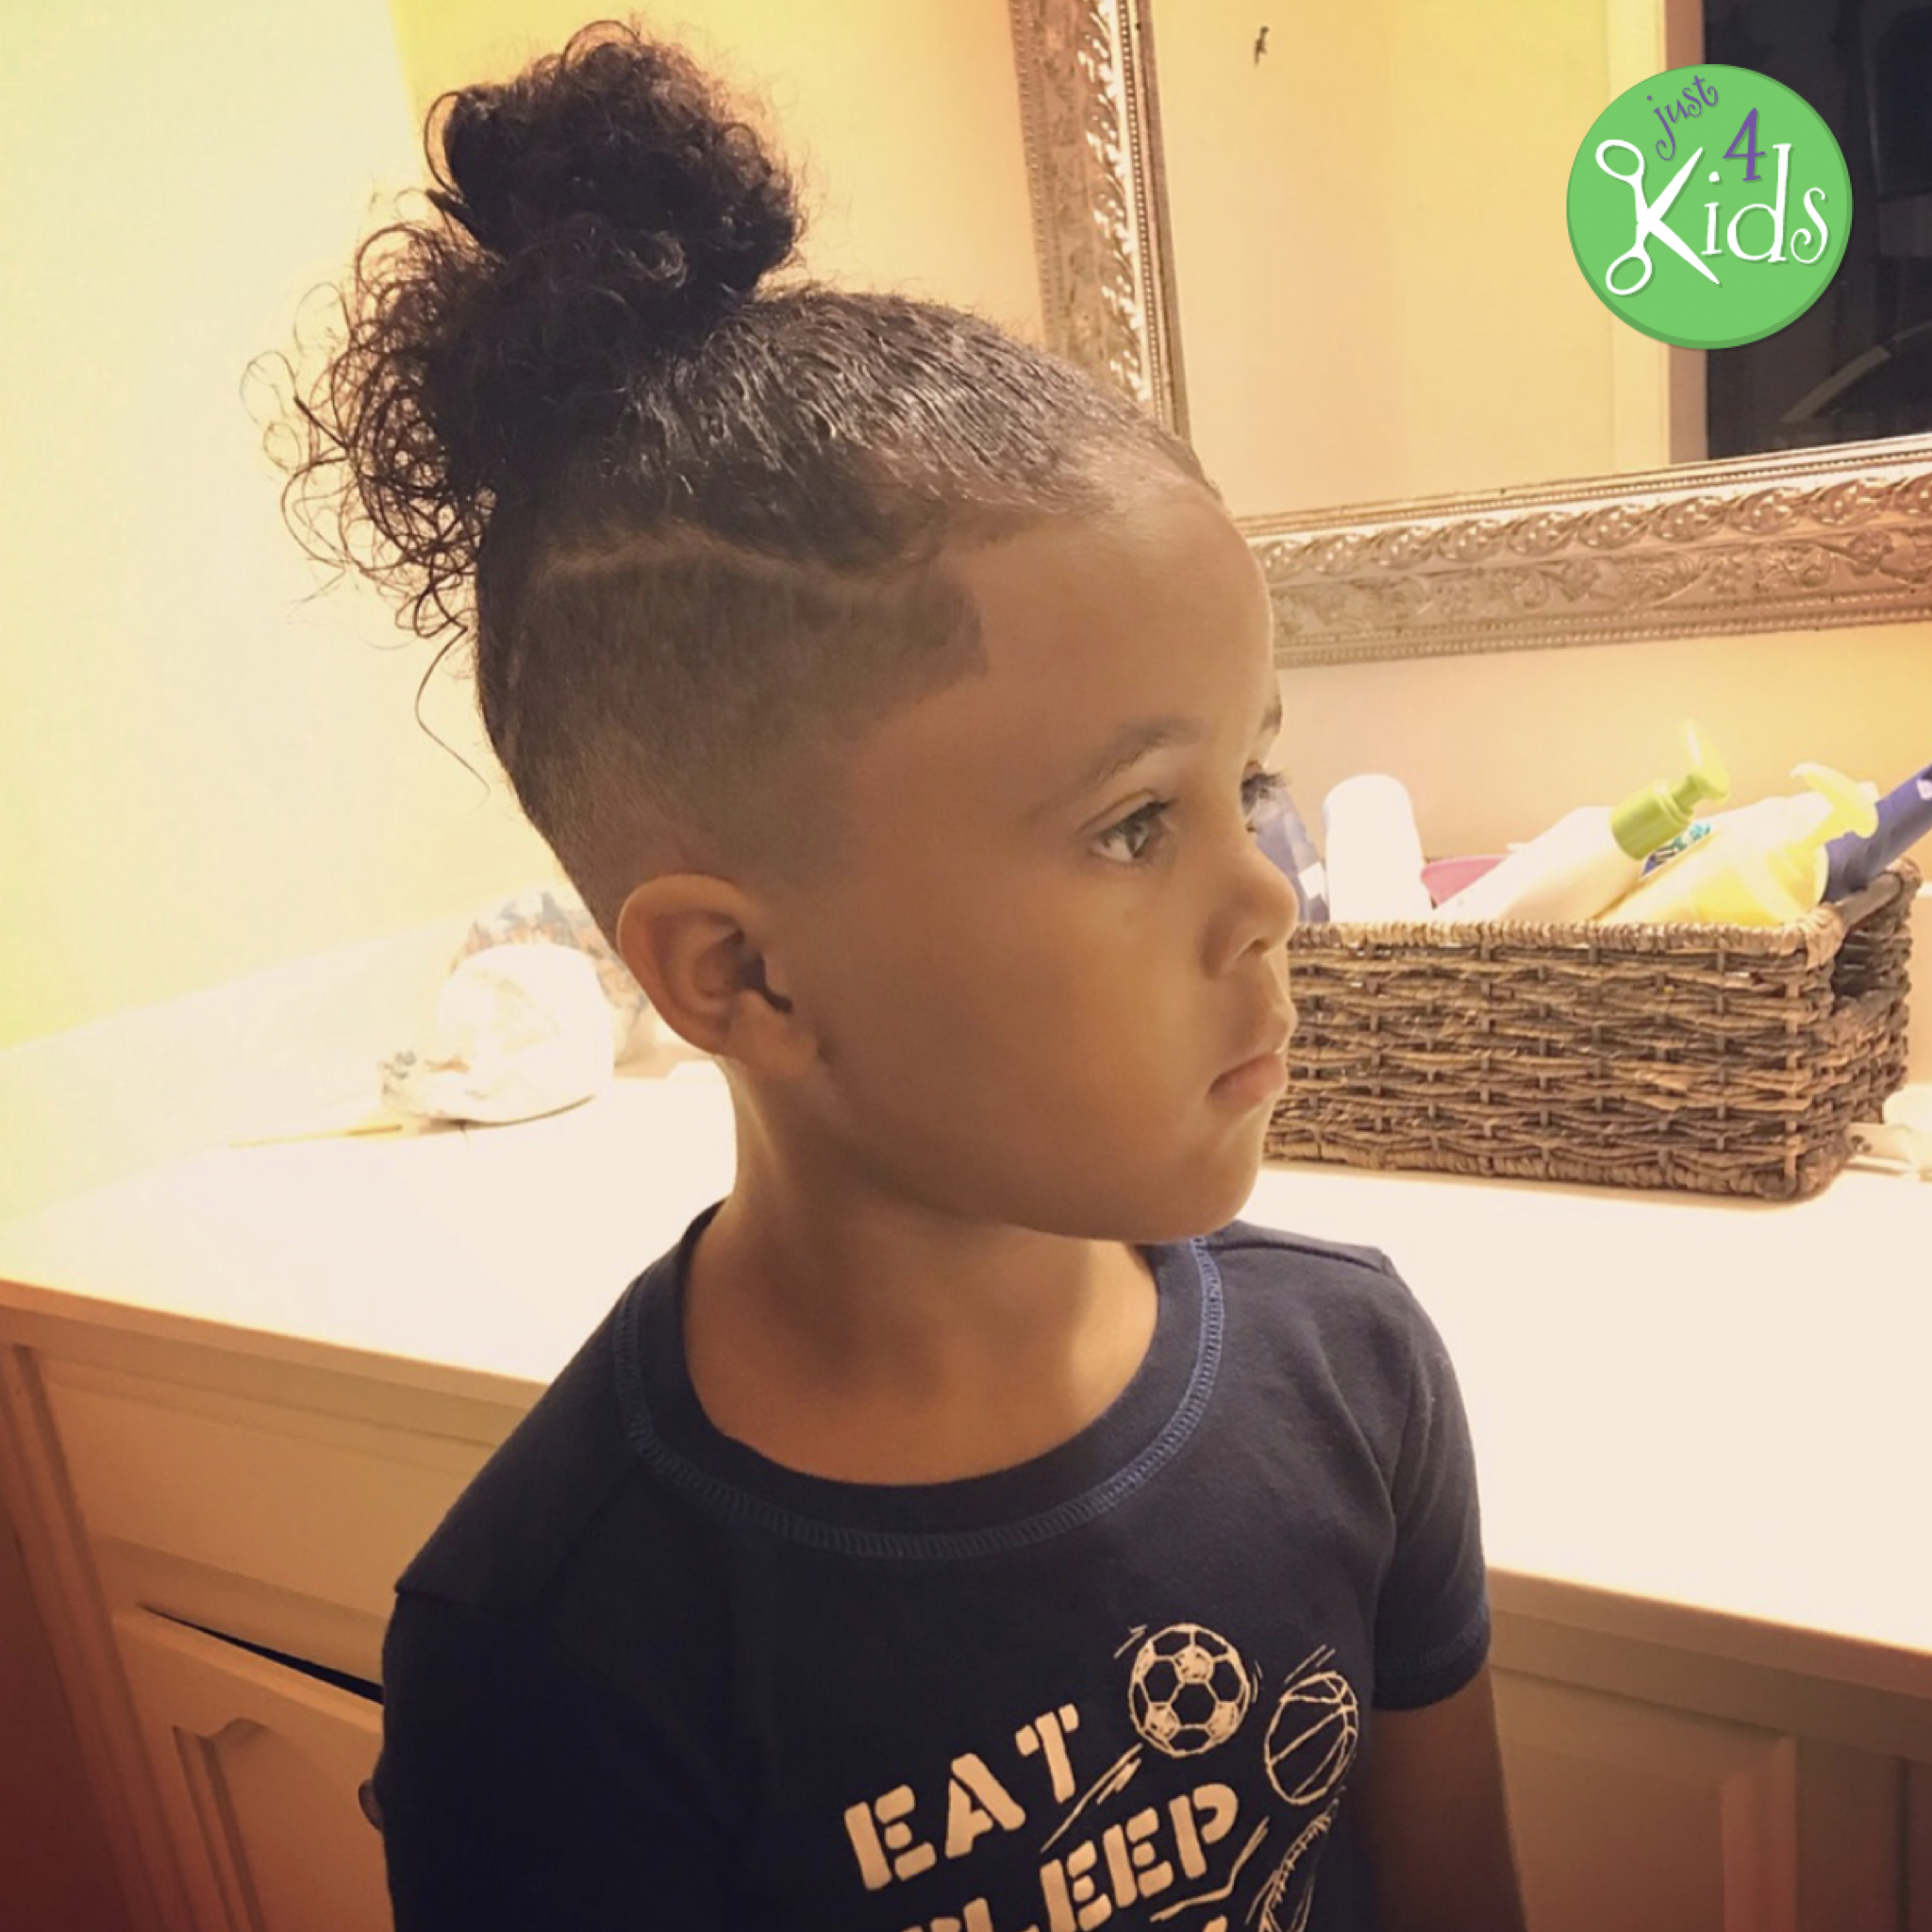 Top Kids Hairstyles 2018 - Long Hairstyles for Boys - Long ...